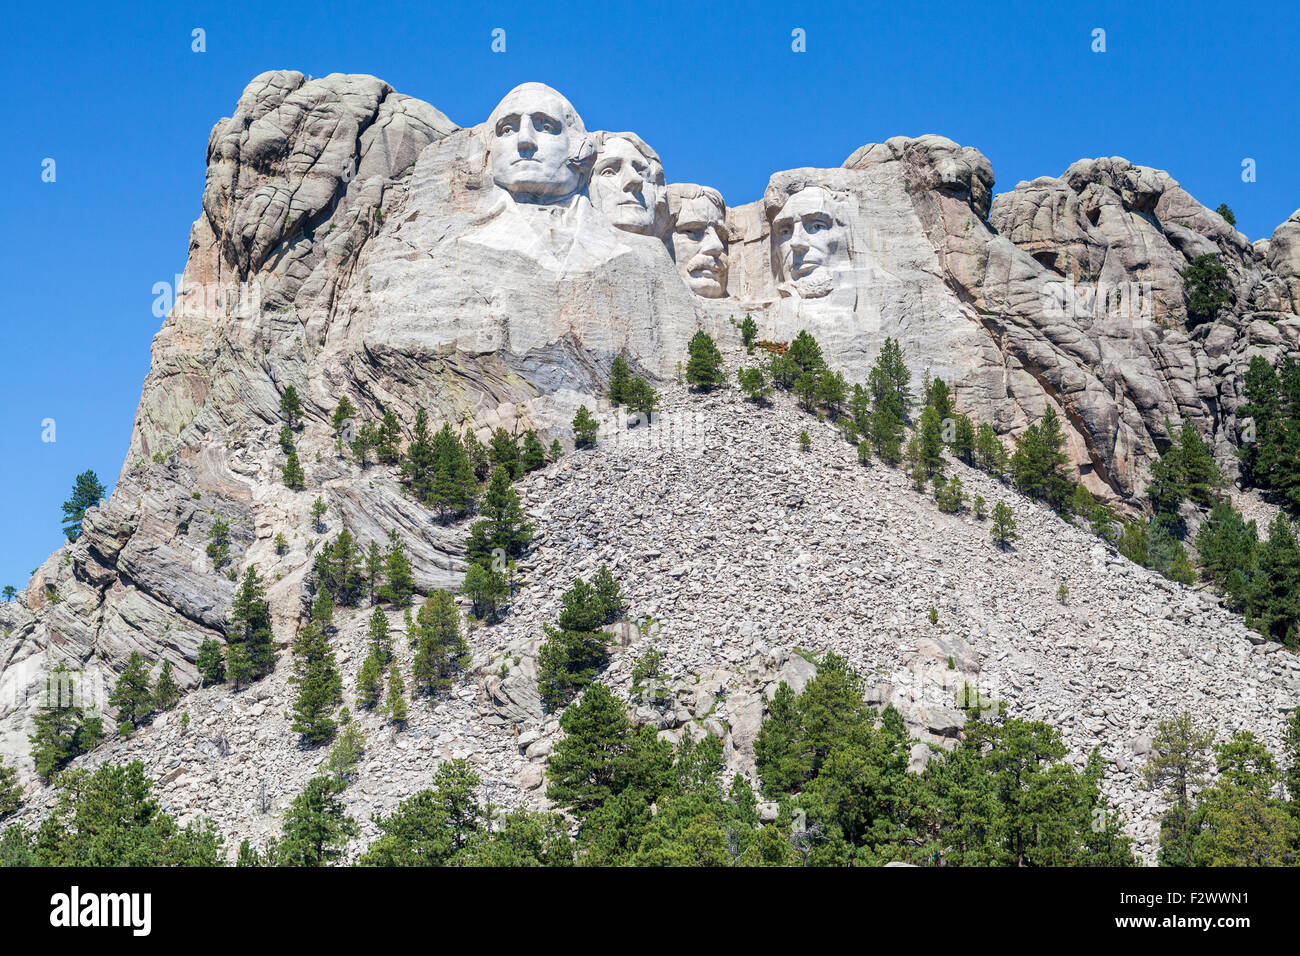 A view of Mount Rushmore National Memorial, South Dakota. Stock Photo